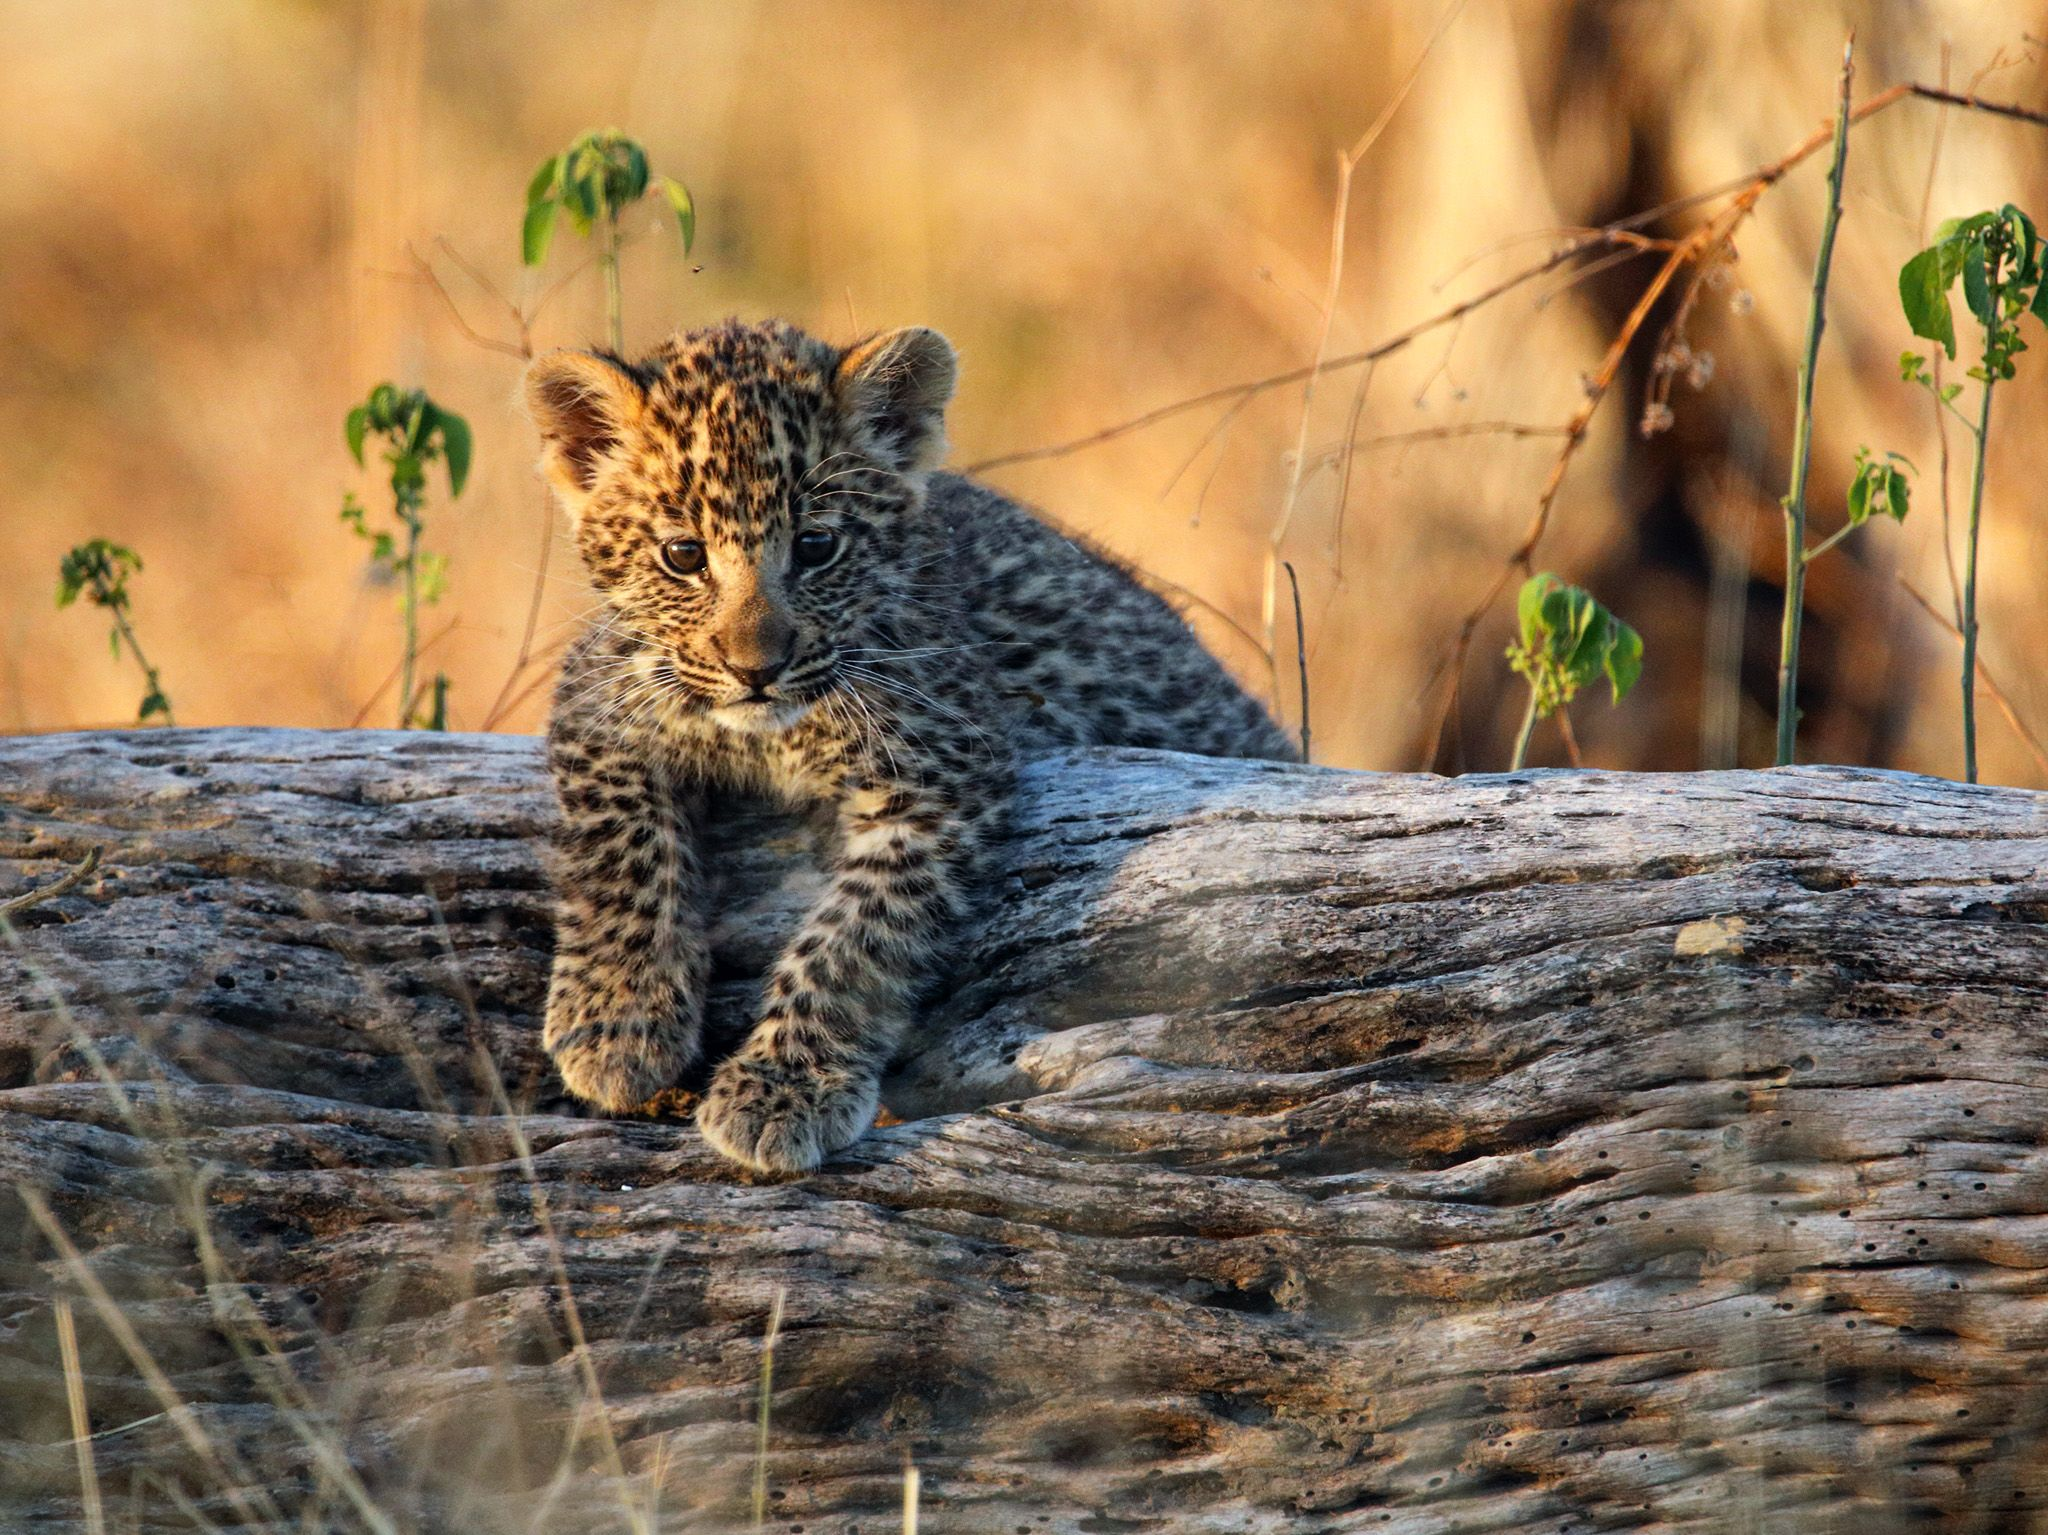 Botswana:  A young Leopard cub lies spread out on its den site; a fallen hollow tree. This image... [Foto del giorno - novembre 2018]